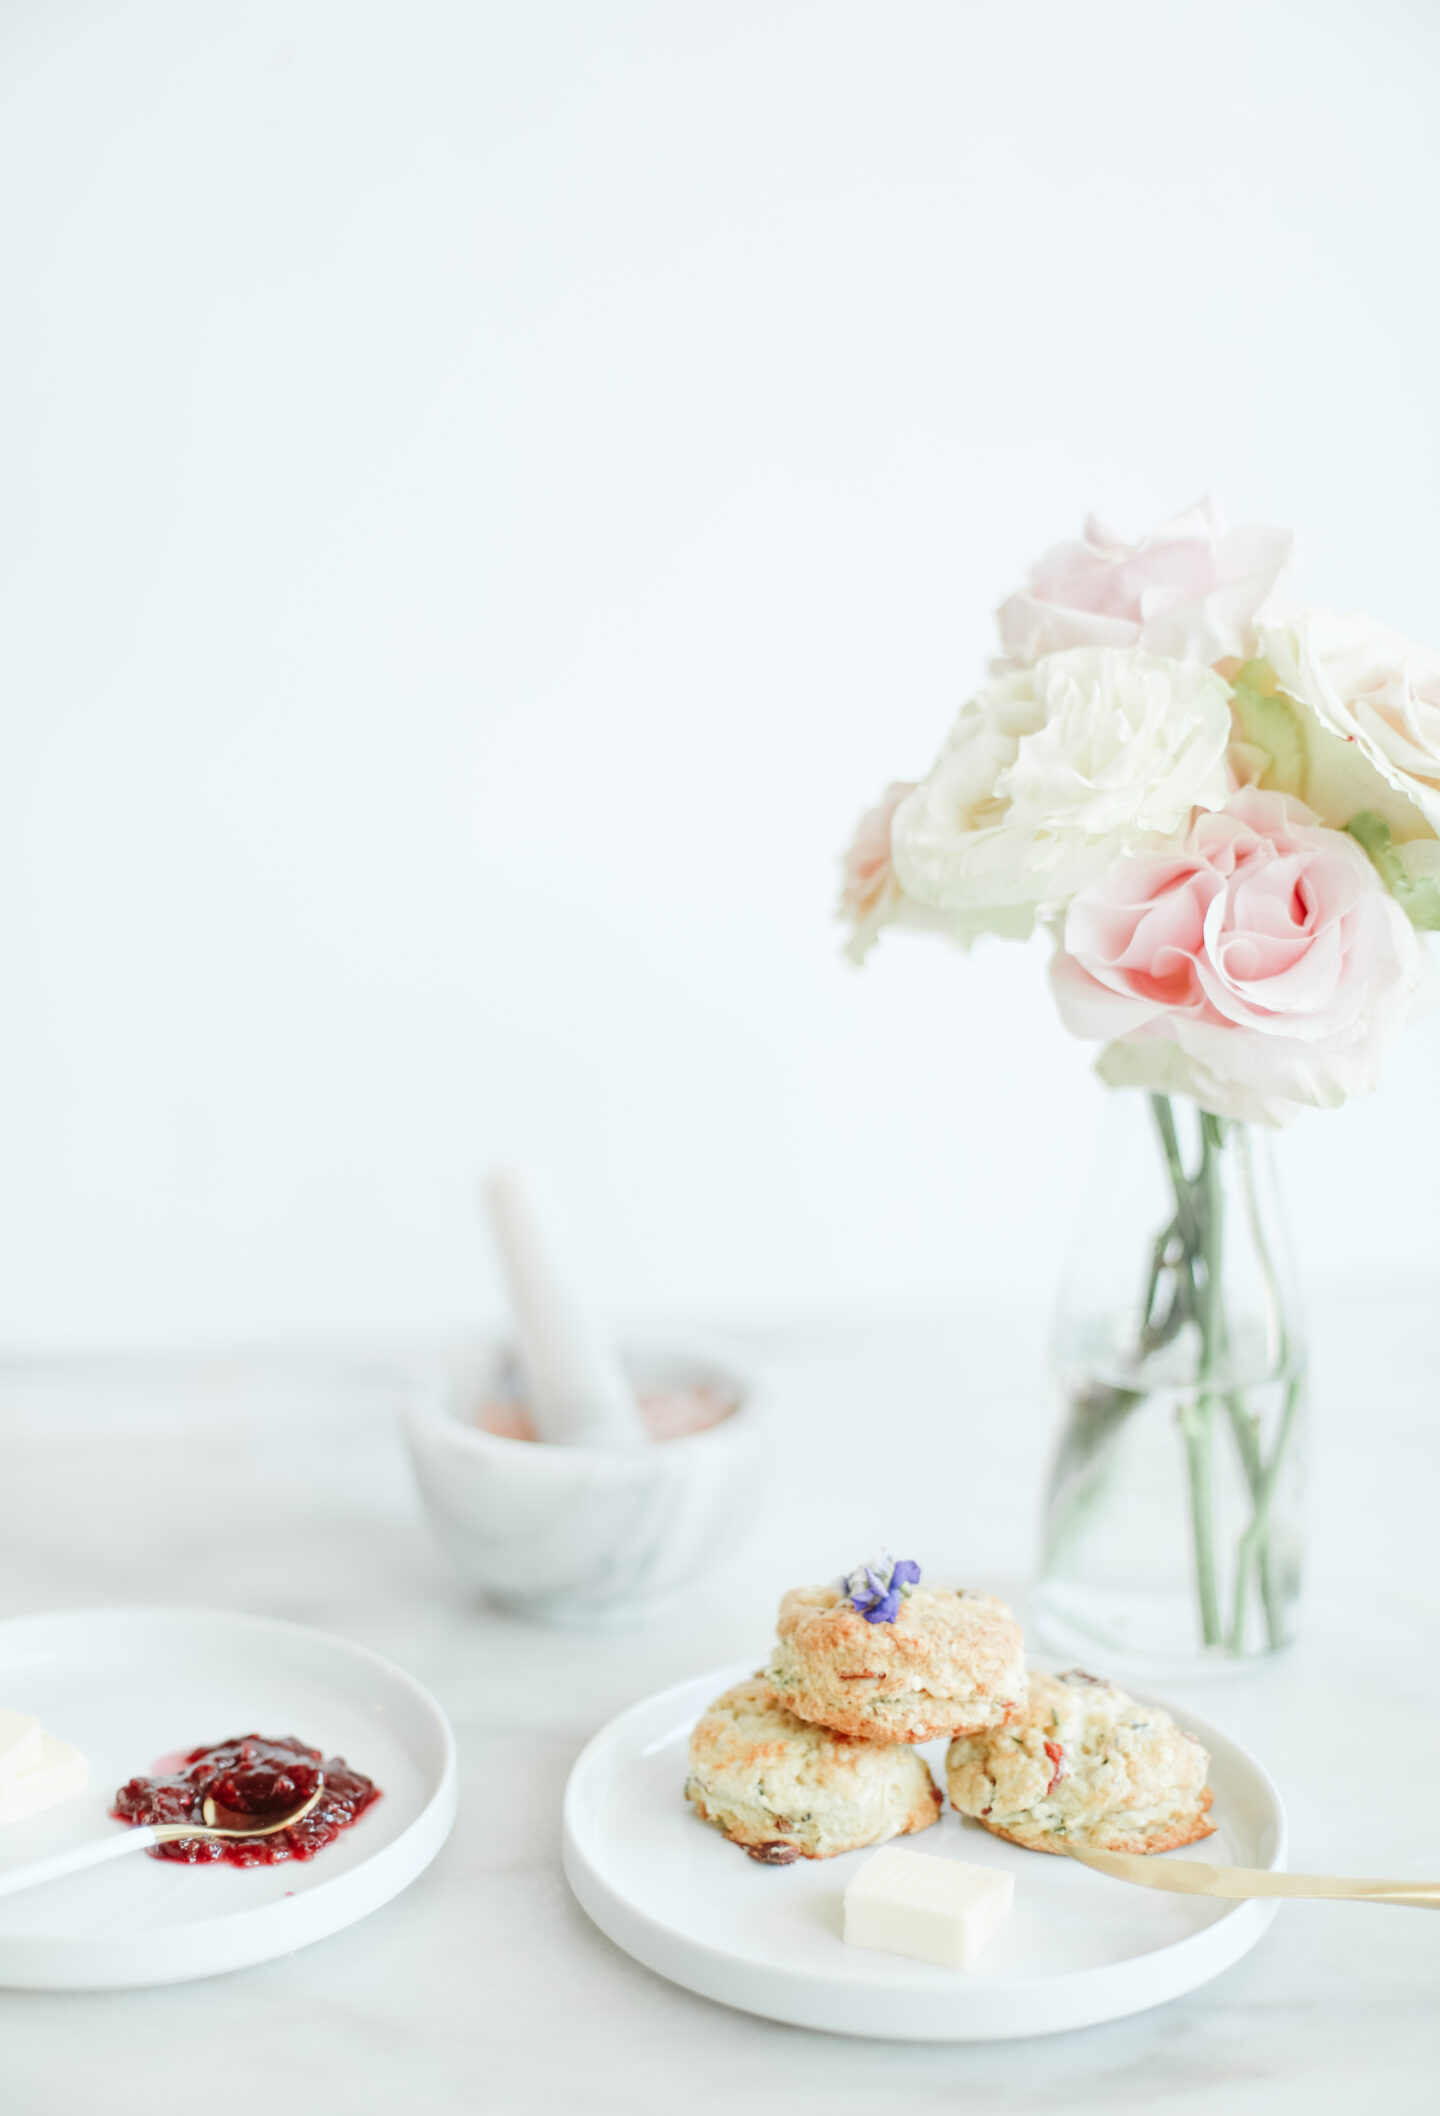 Tiny food: Feta Bacon Scones with fresh herbs